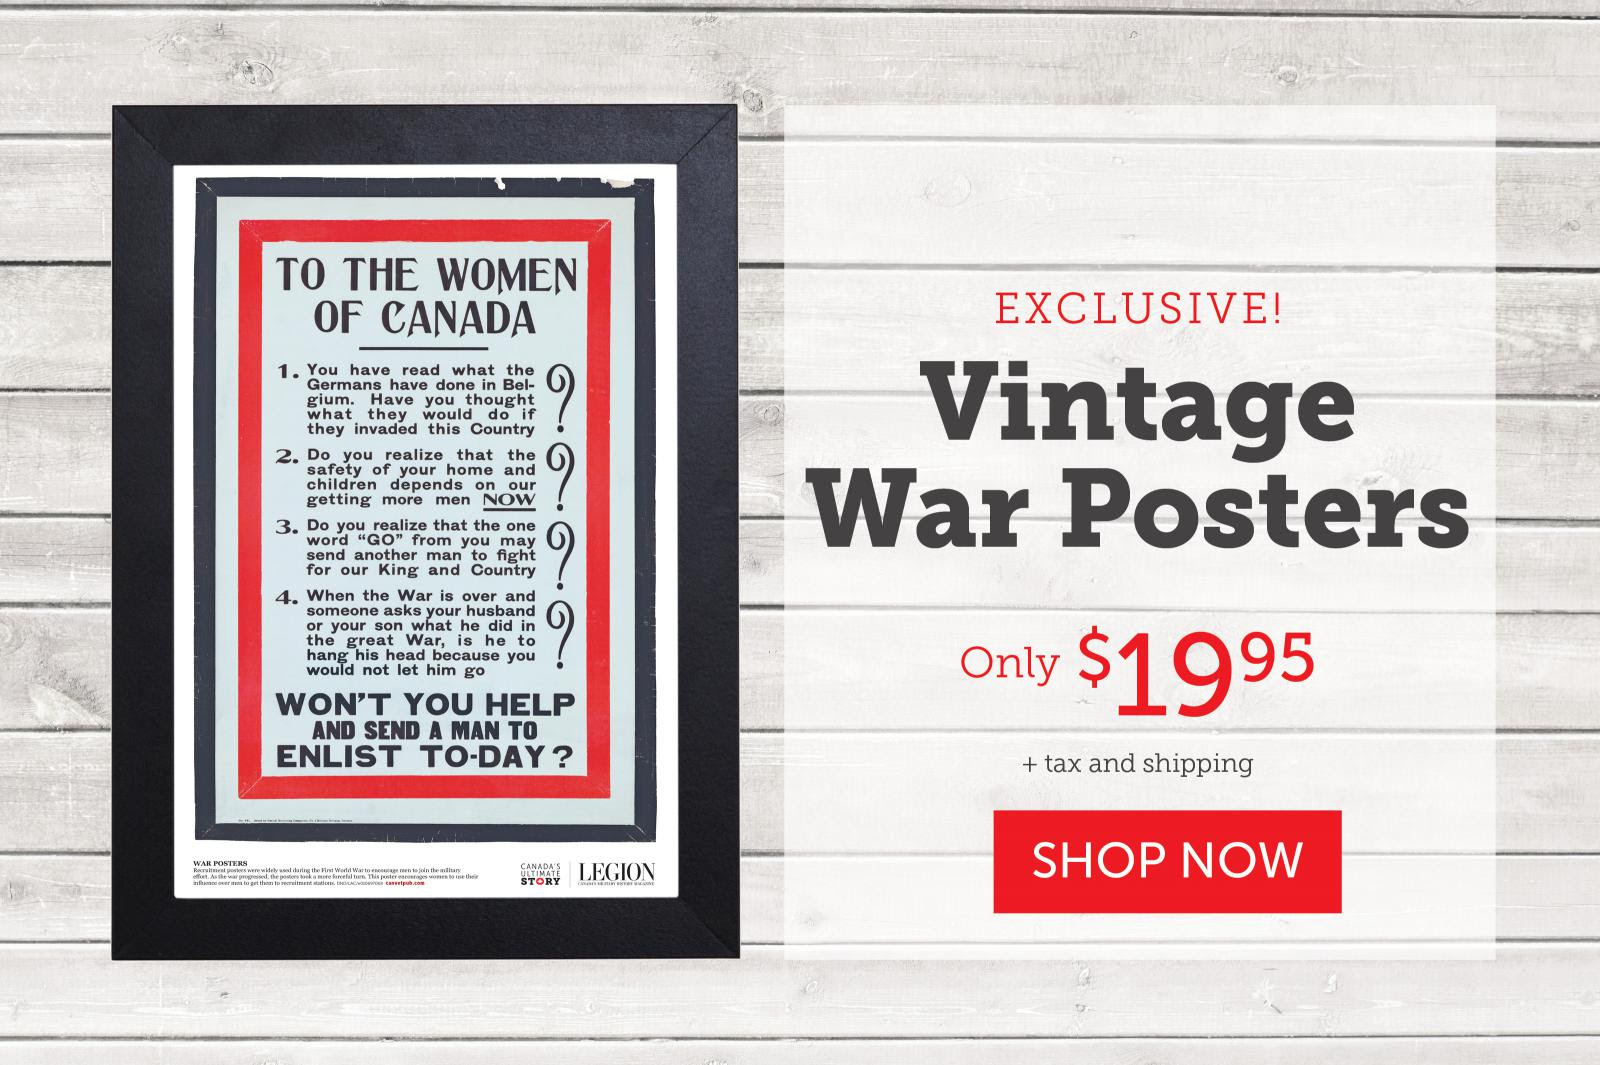 To the women of Canada! Vintage War Poster.